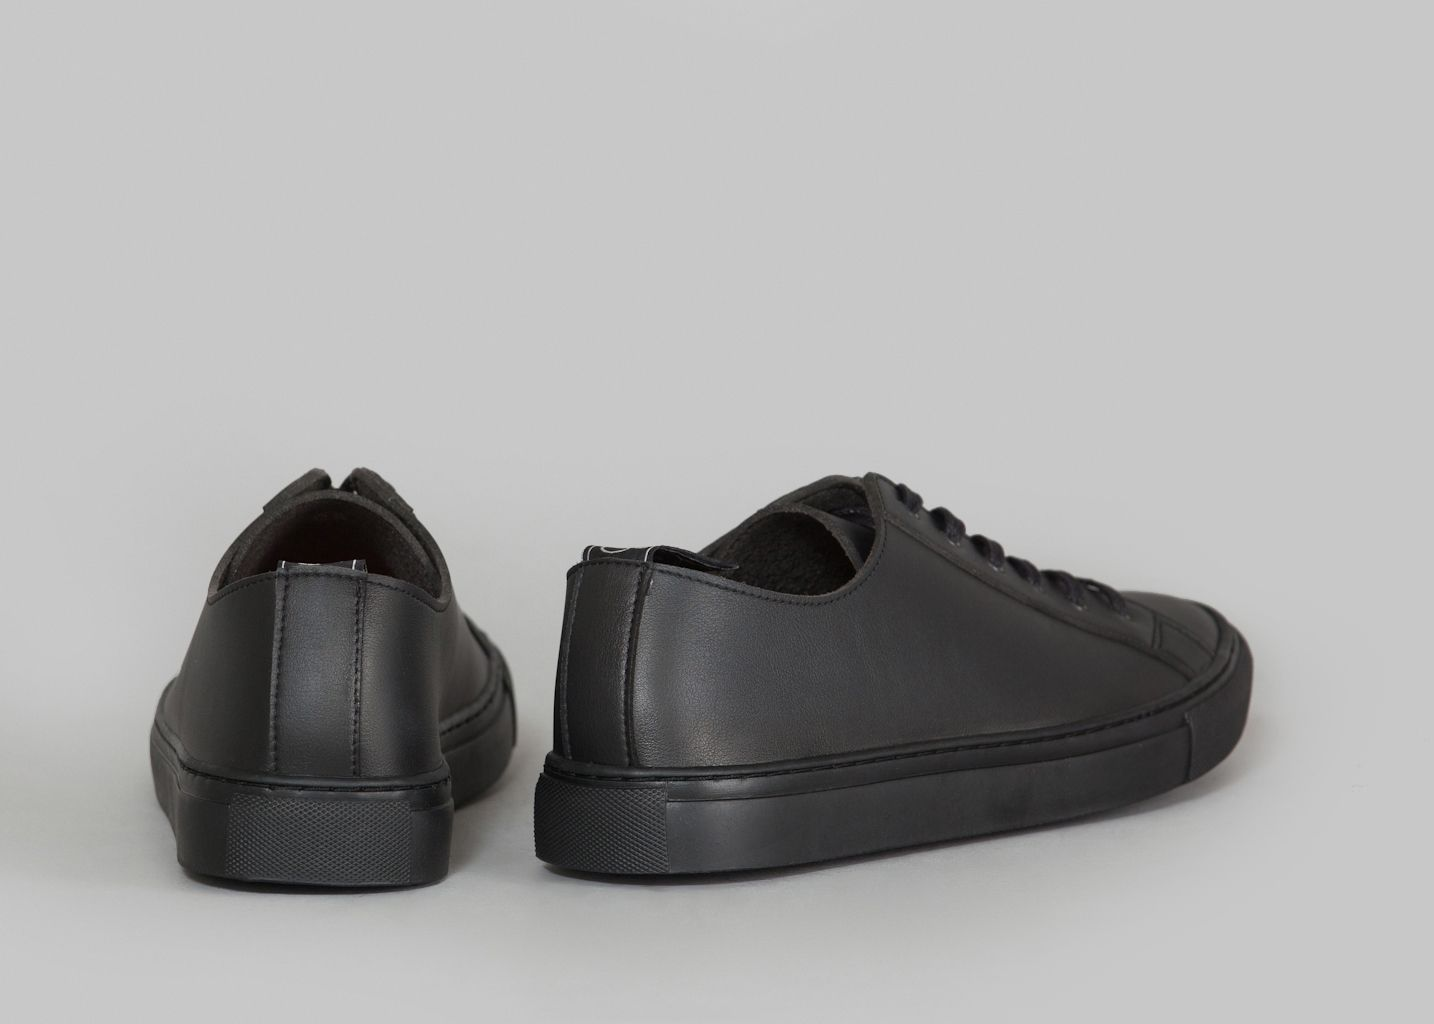 Samo sneakers - Good Guys